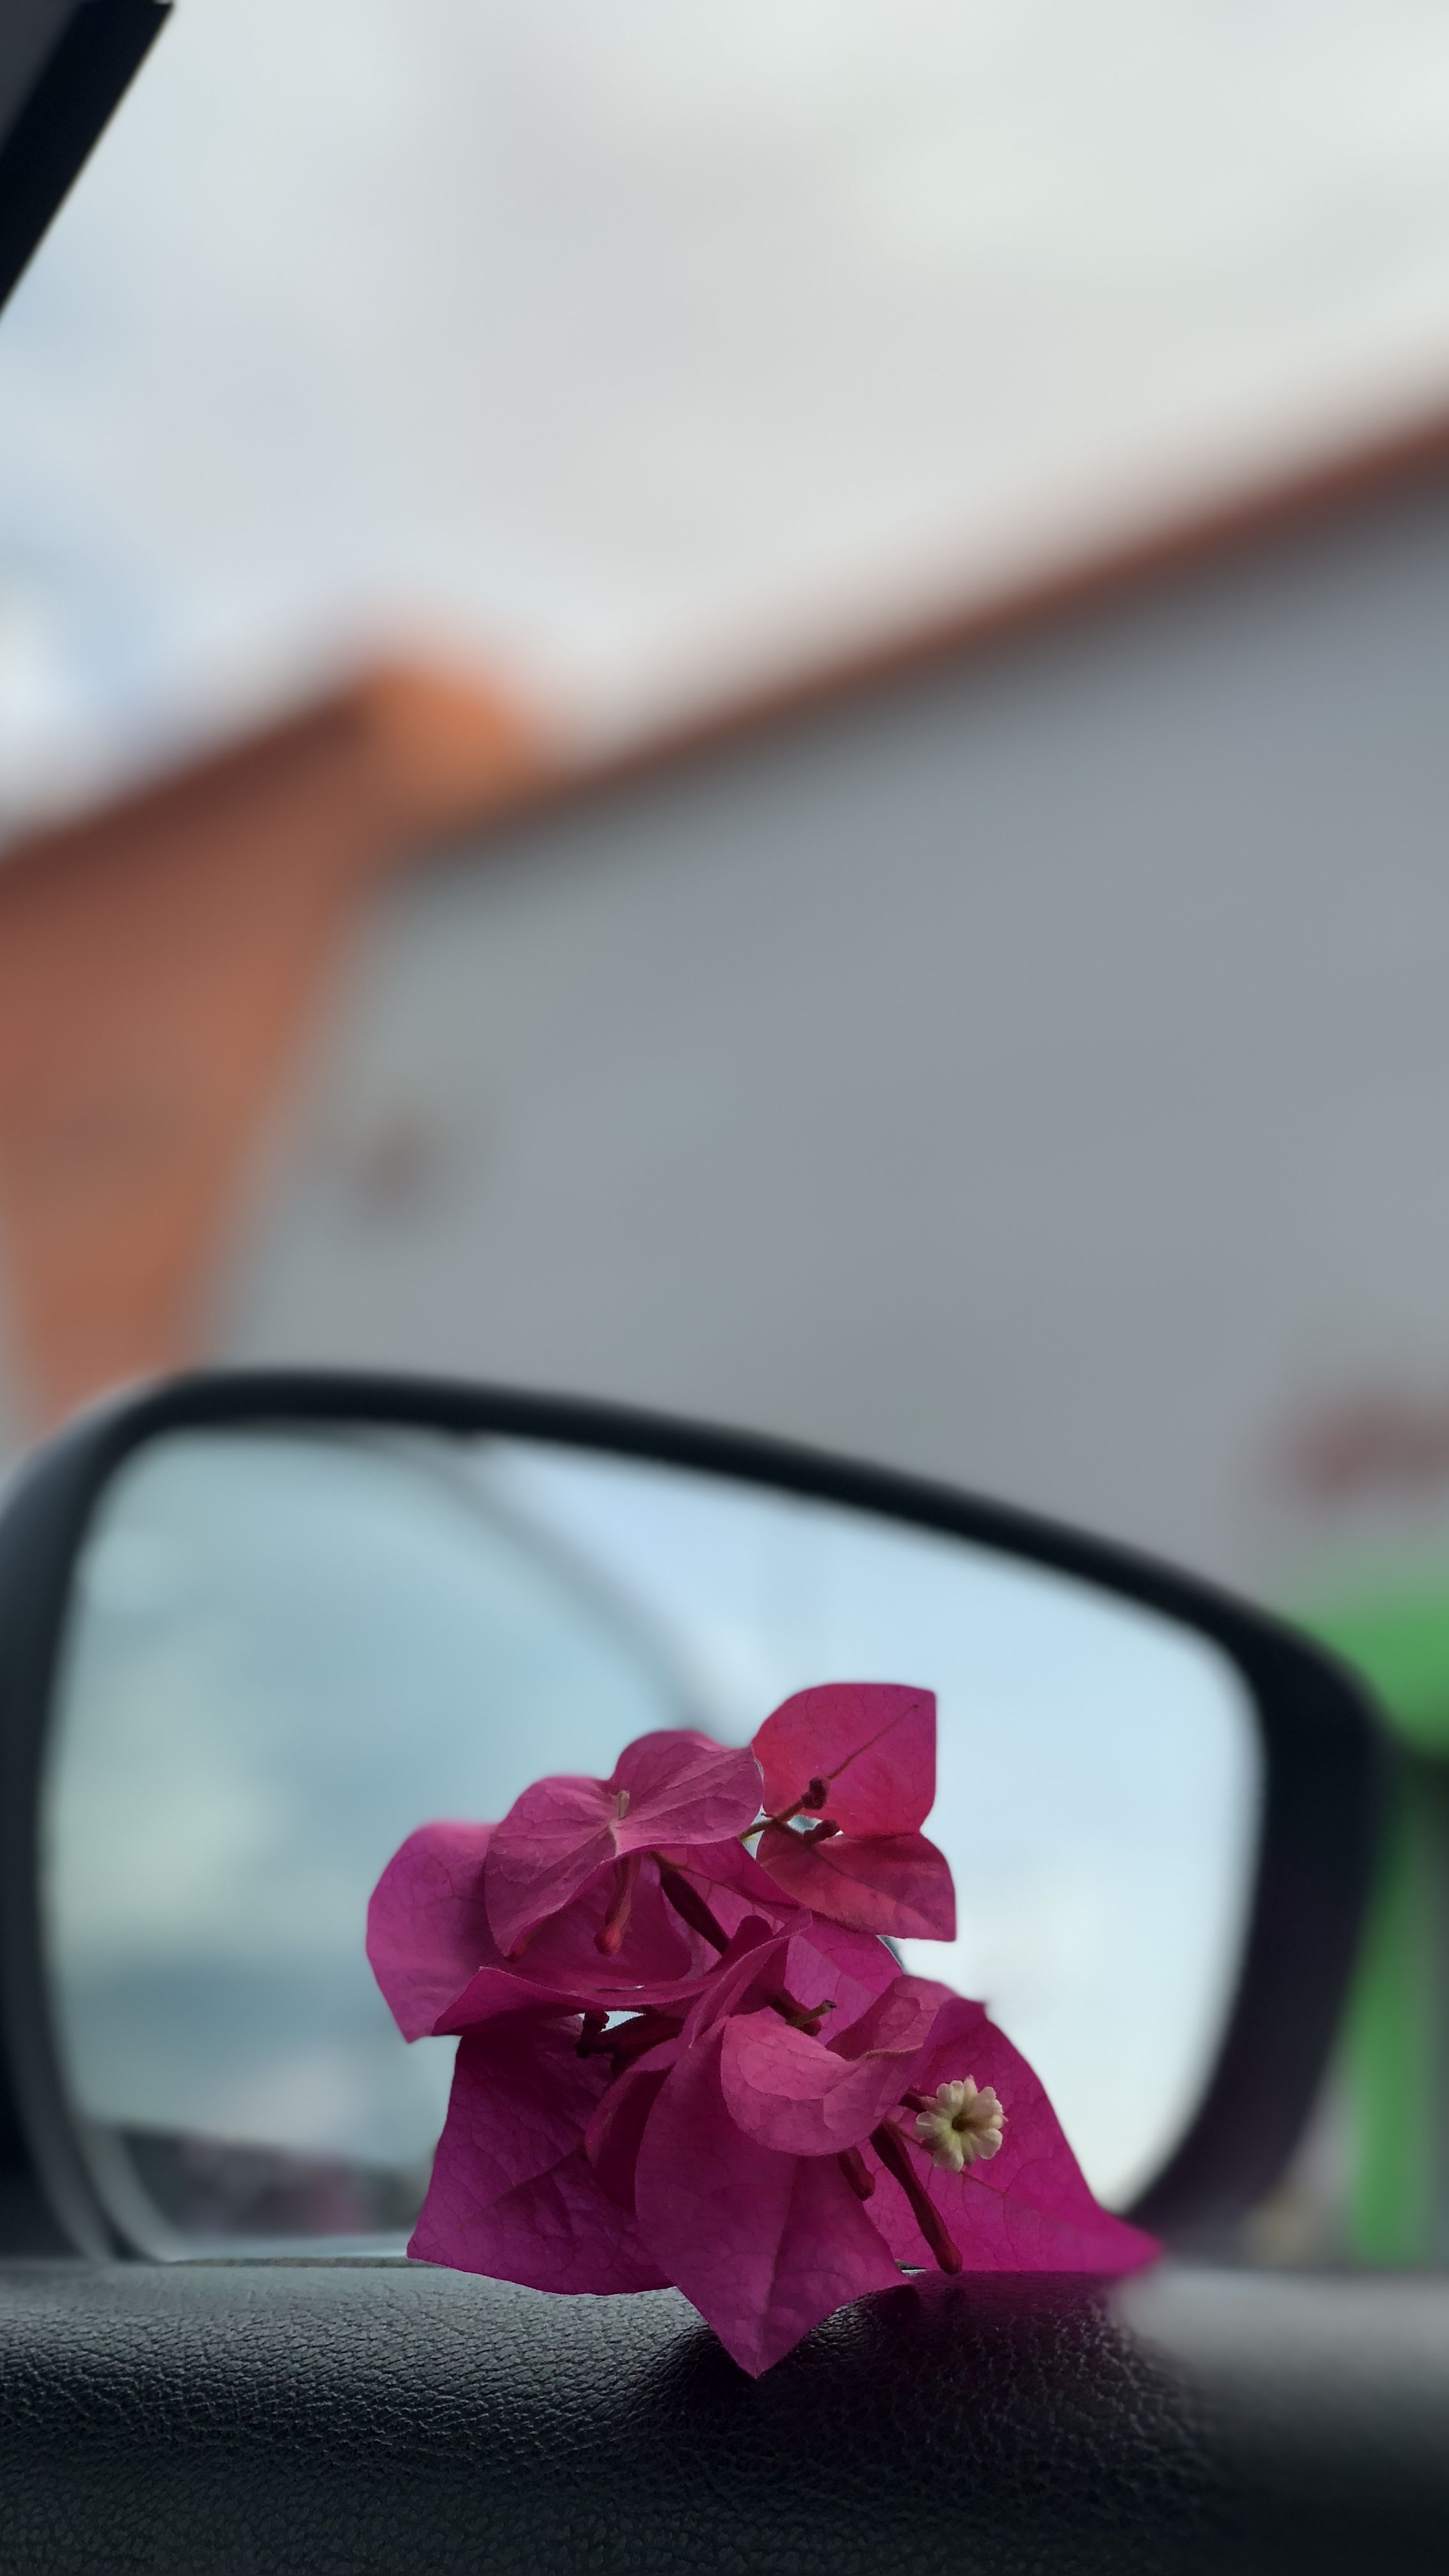 Pin By Lulea On My Photos Flower Aesthetic Rain Photography Nature Photography